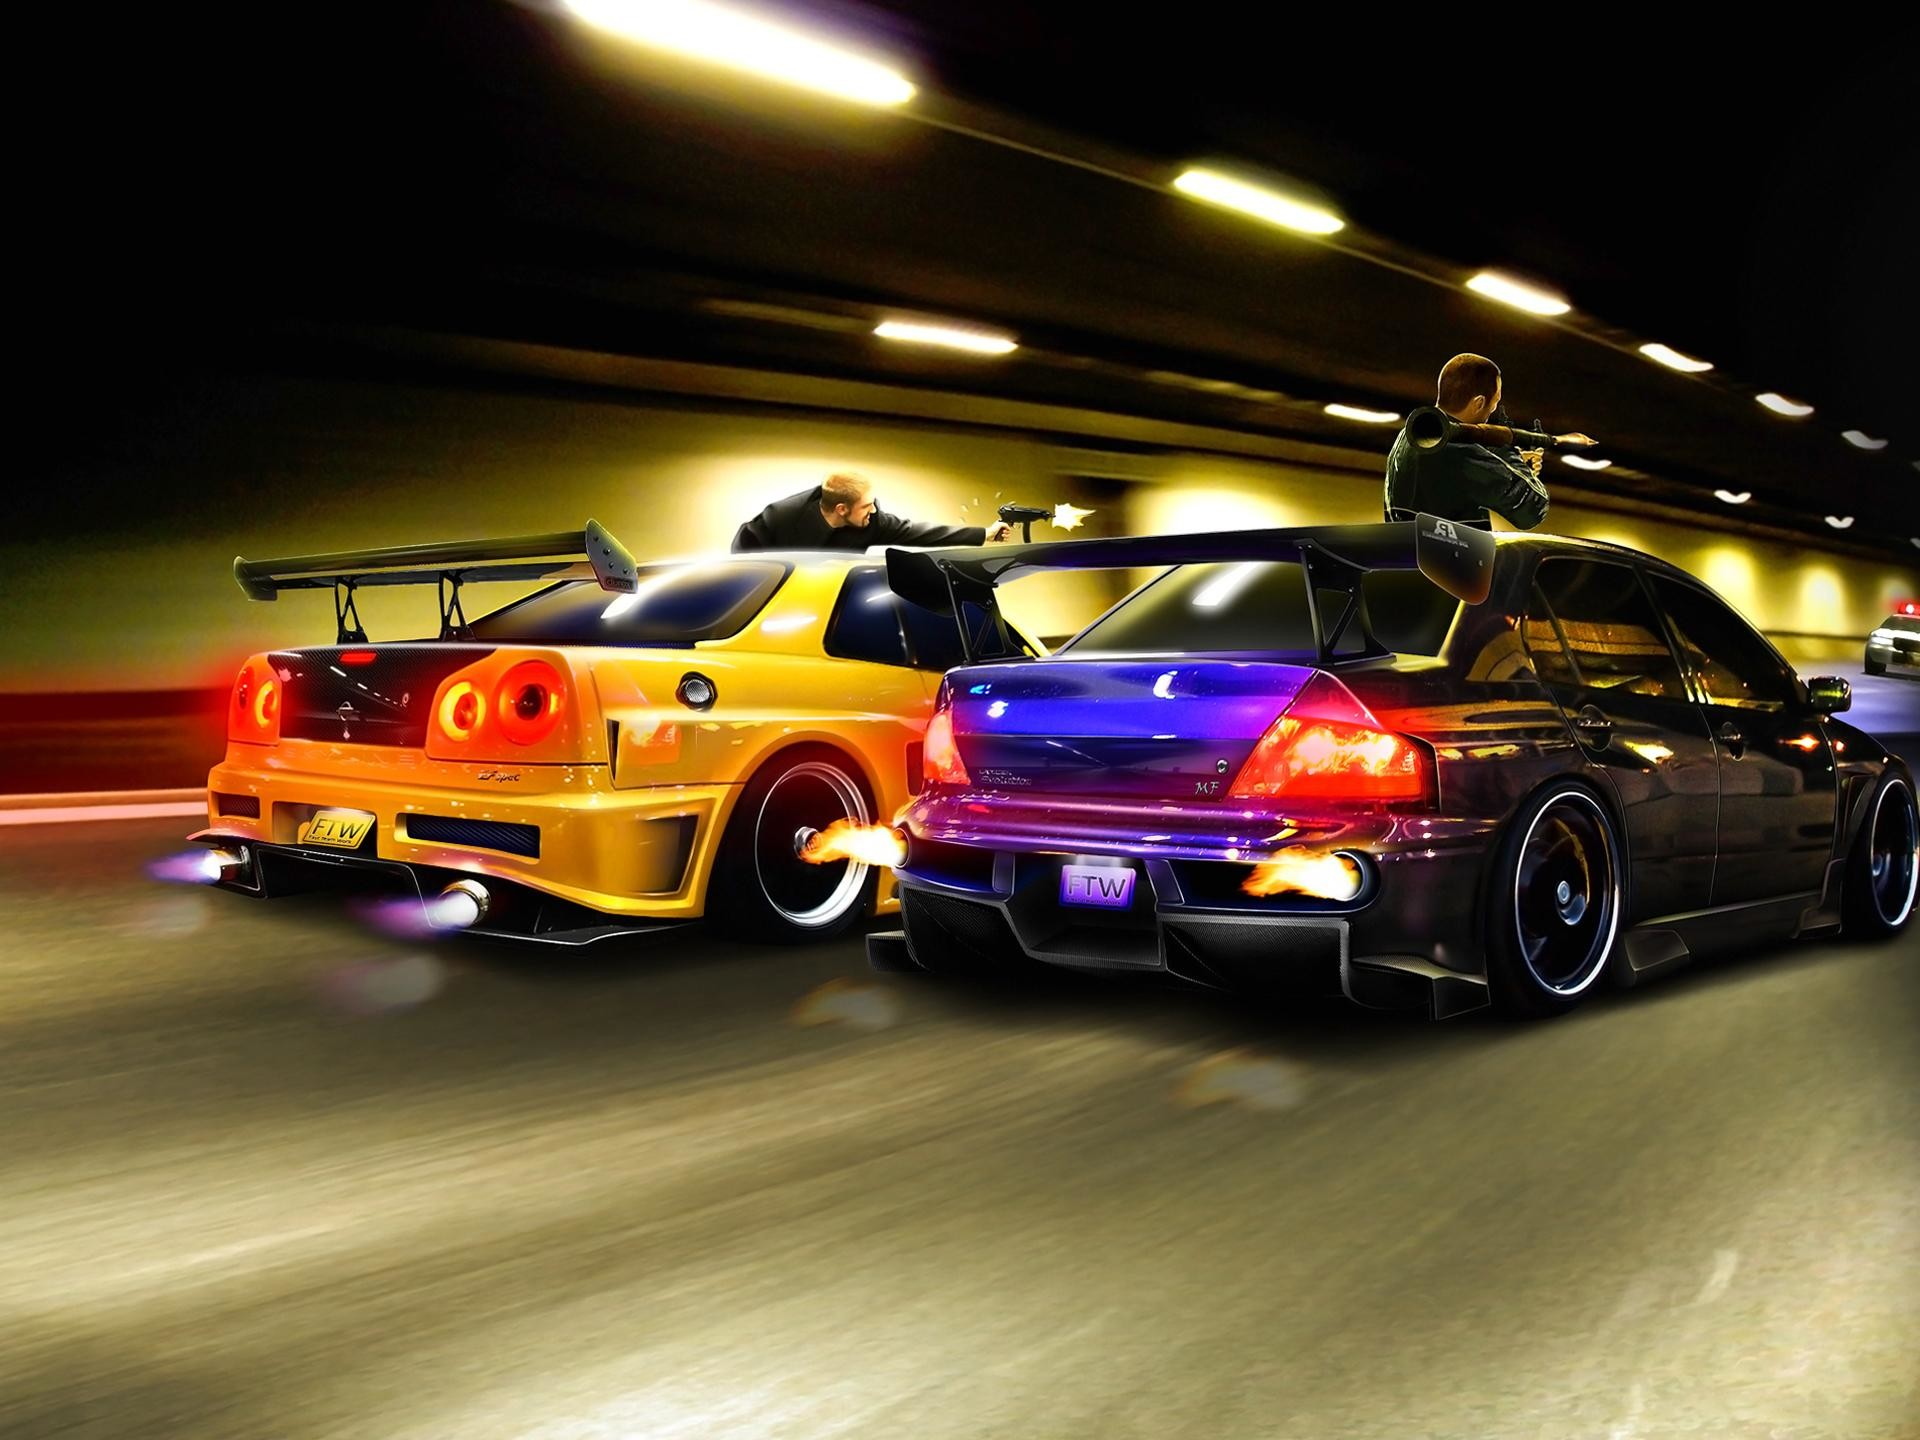 Res: 1920x1440, Street Racing Cars Wallpapers : Street Racing Cars Full HD Quality Photos